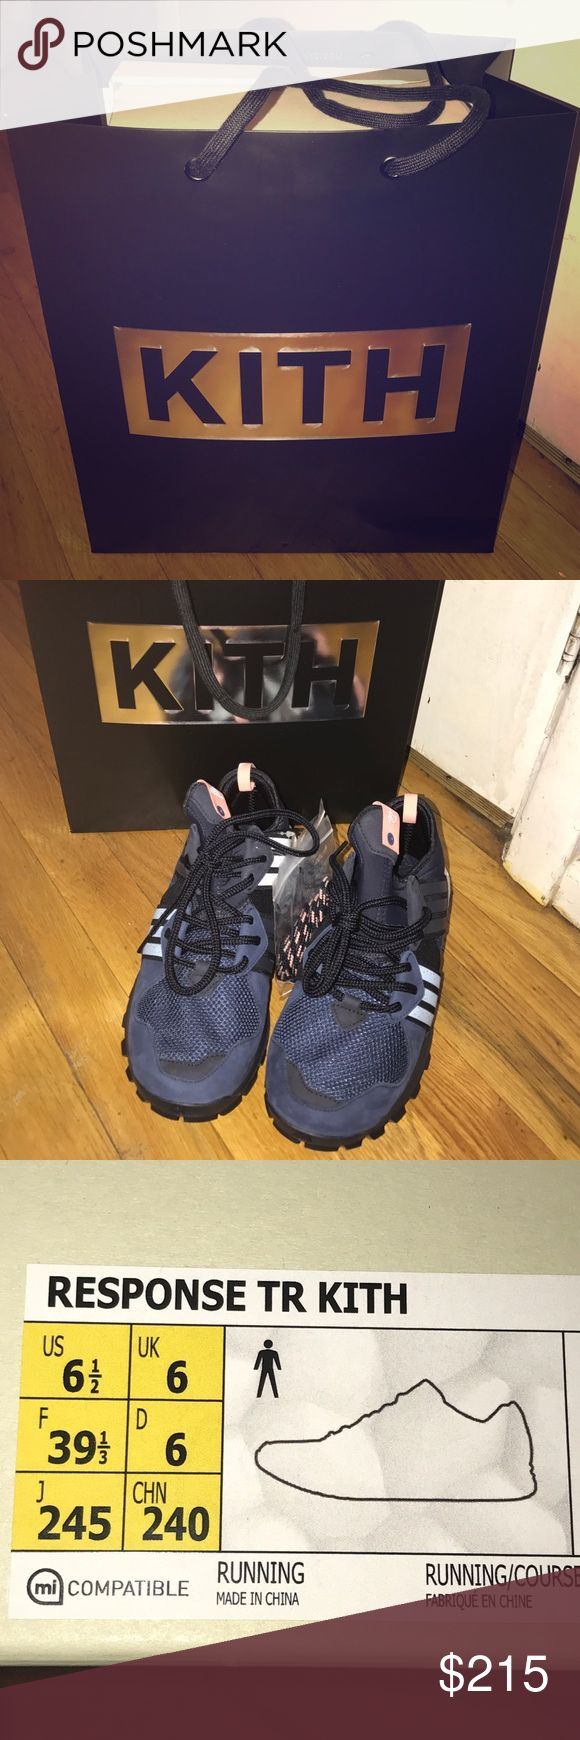 """Adidas RESPONSE TR KITH """"KITH ASPEN"""" Purchased the shoe item in Kith Manhattan Raffle with good condition, never worn. Adidas Shoes Sneakers"""